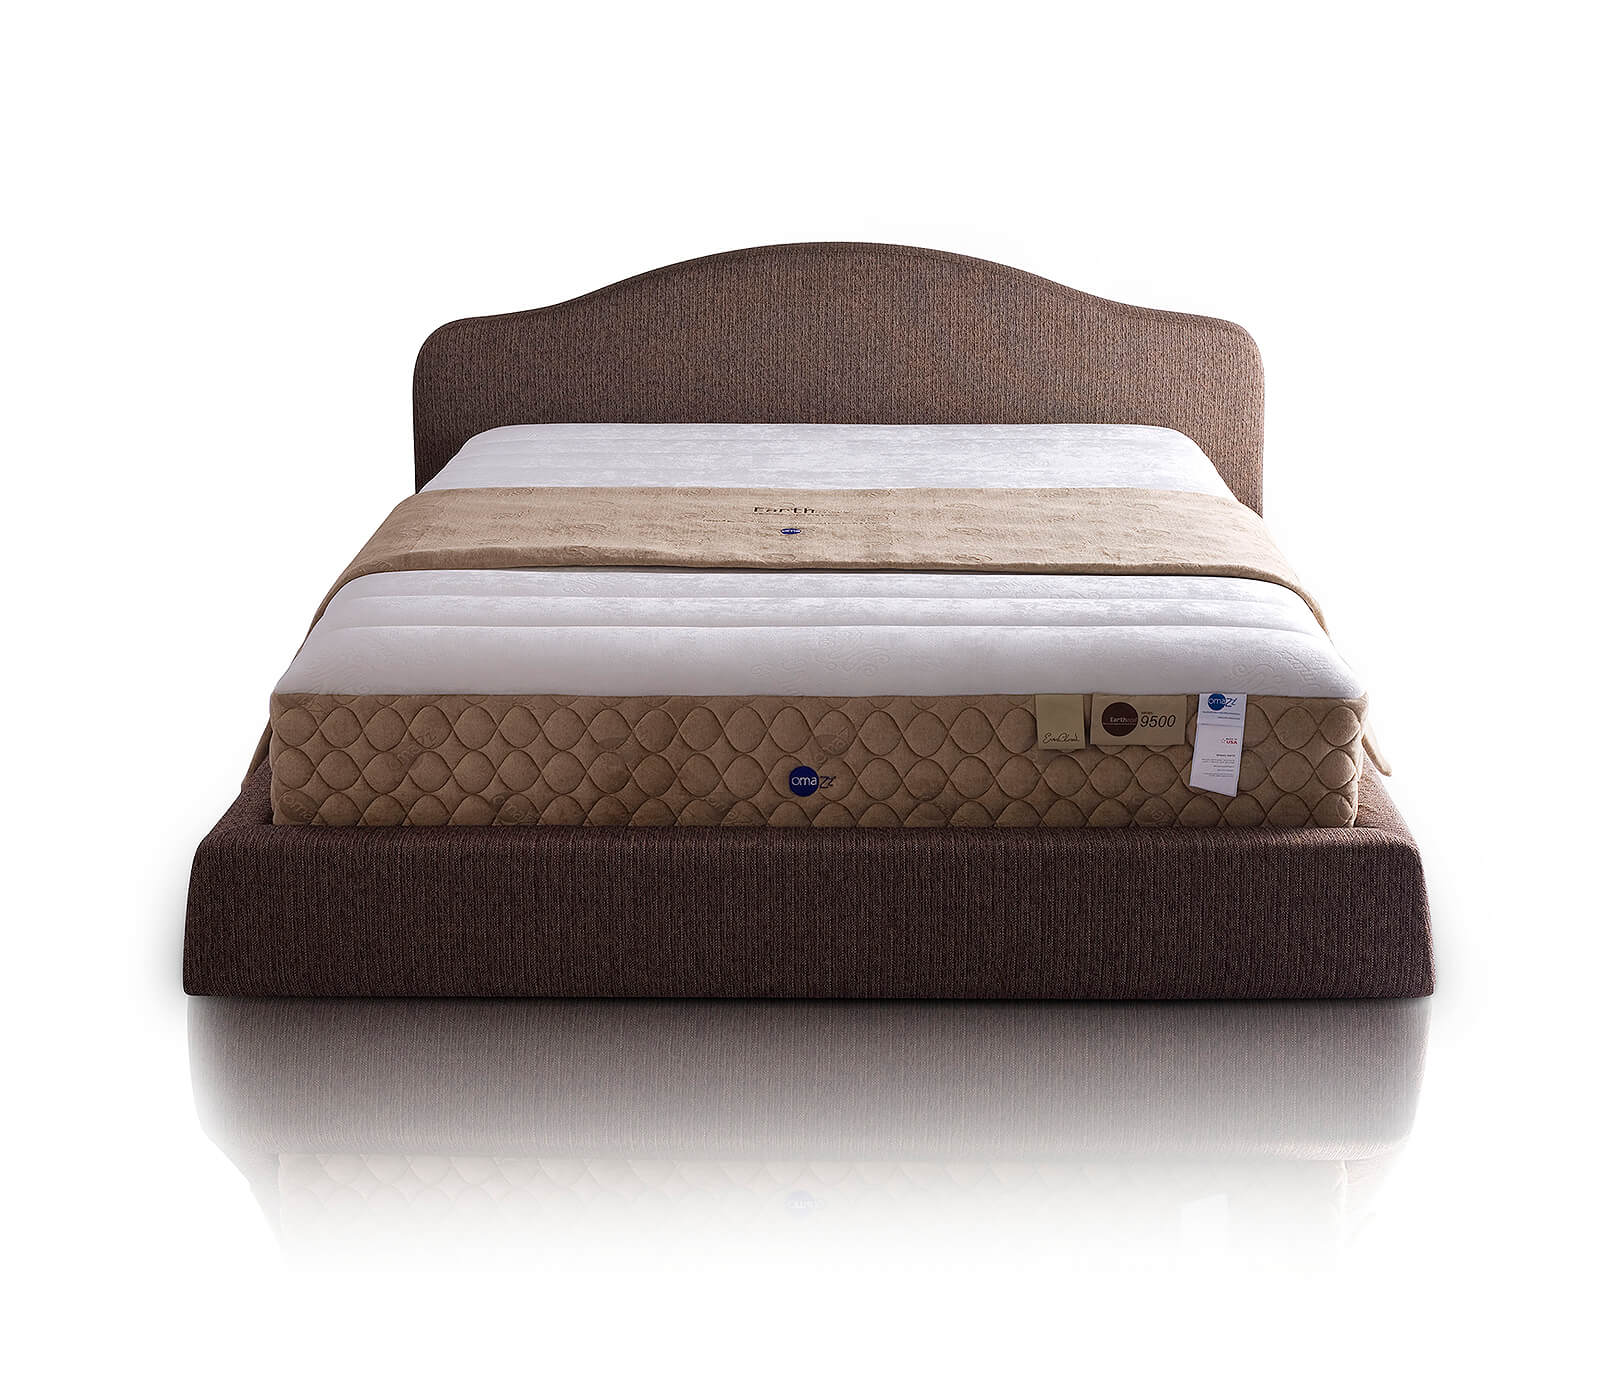 Omazz Mattress Earth Eco 9500